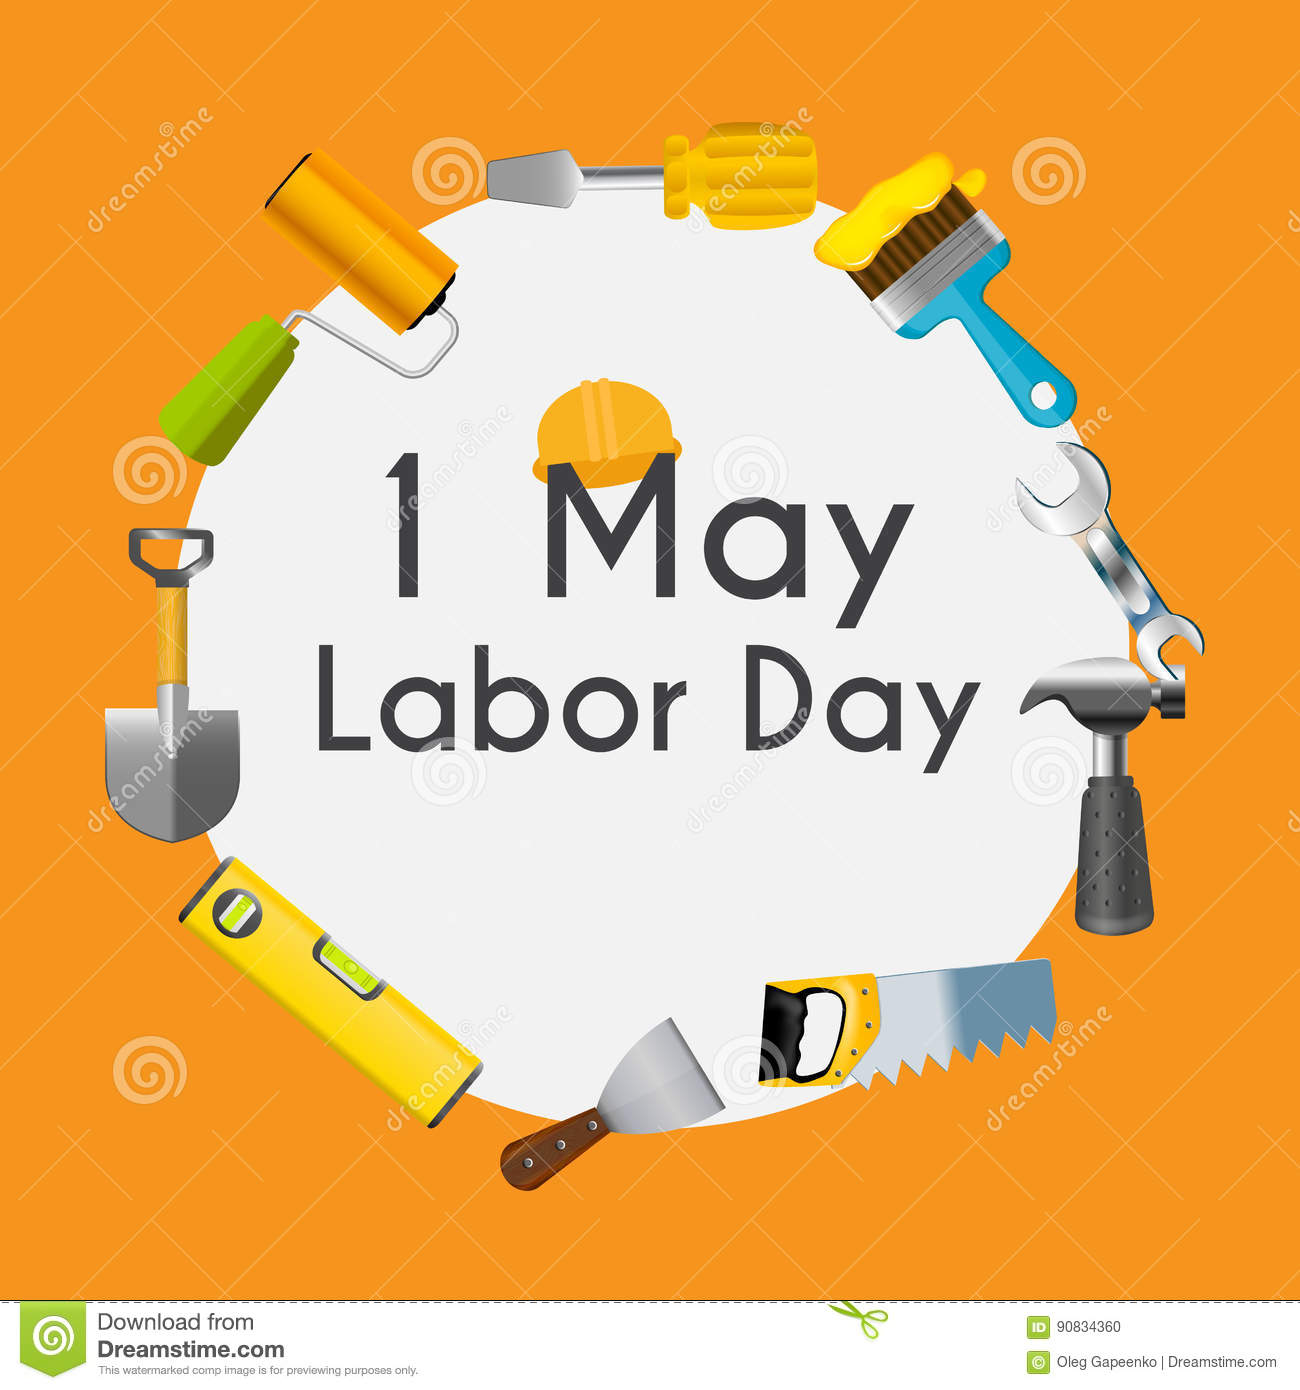 Labor Day 1 May Poster Vector Illustration Stock Vector